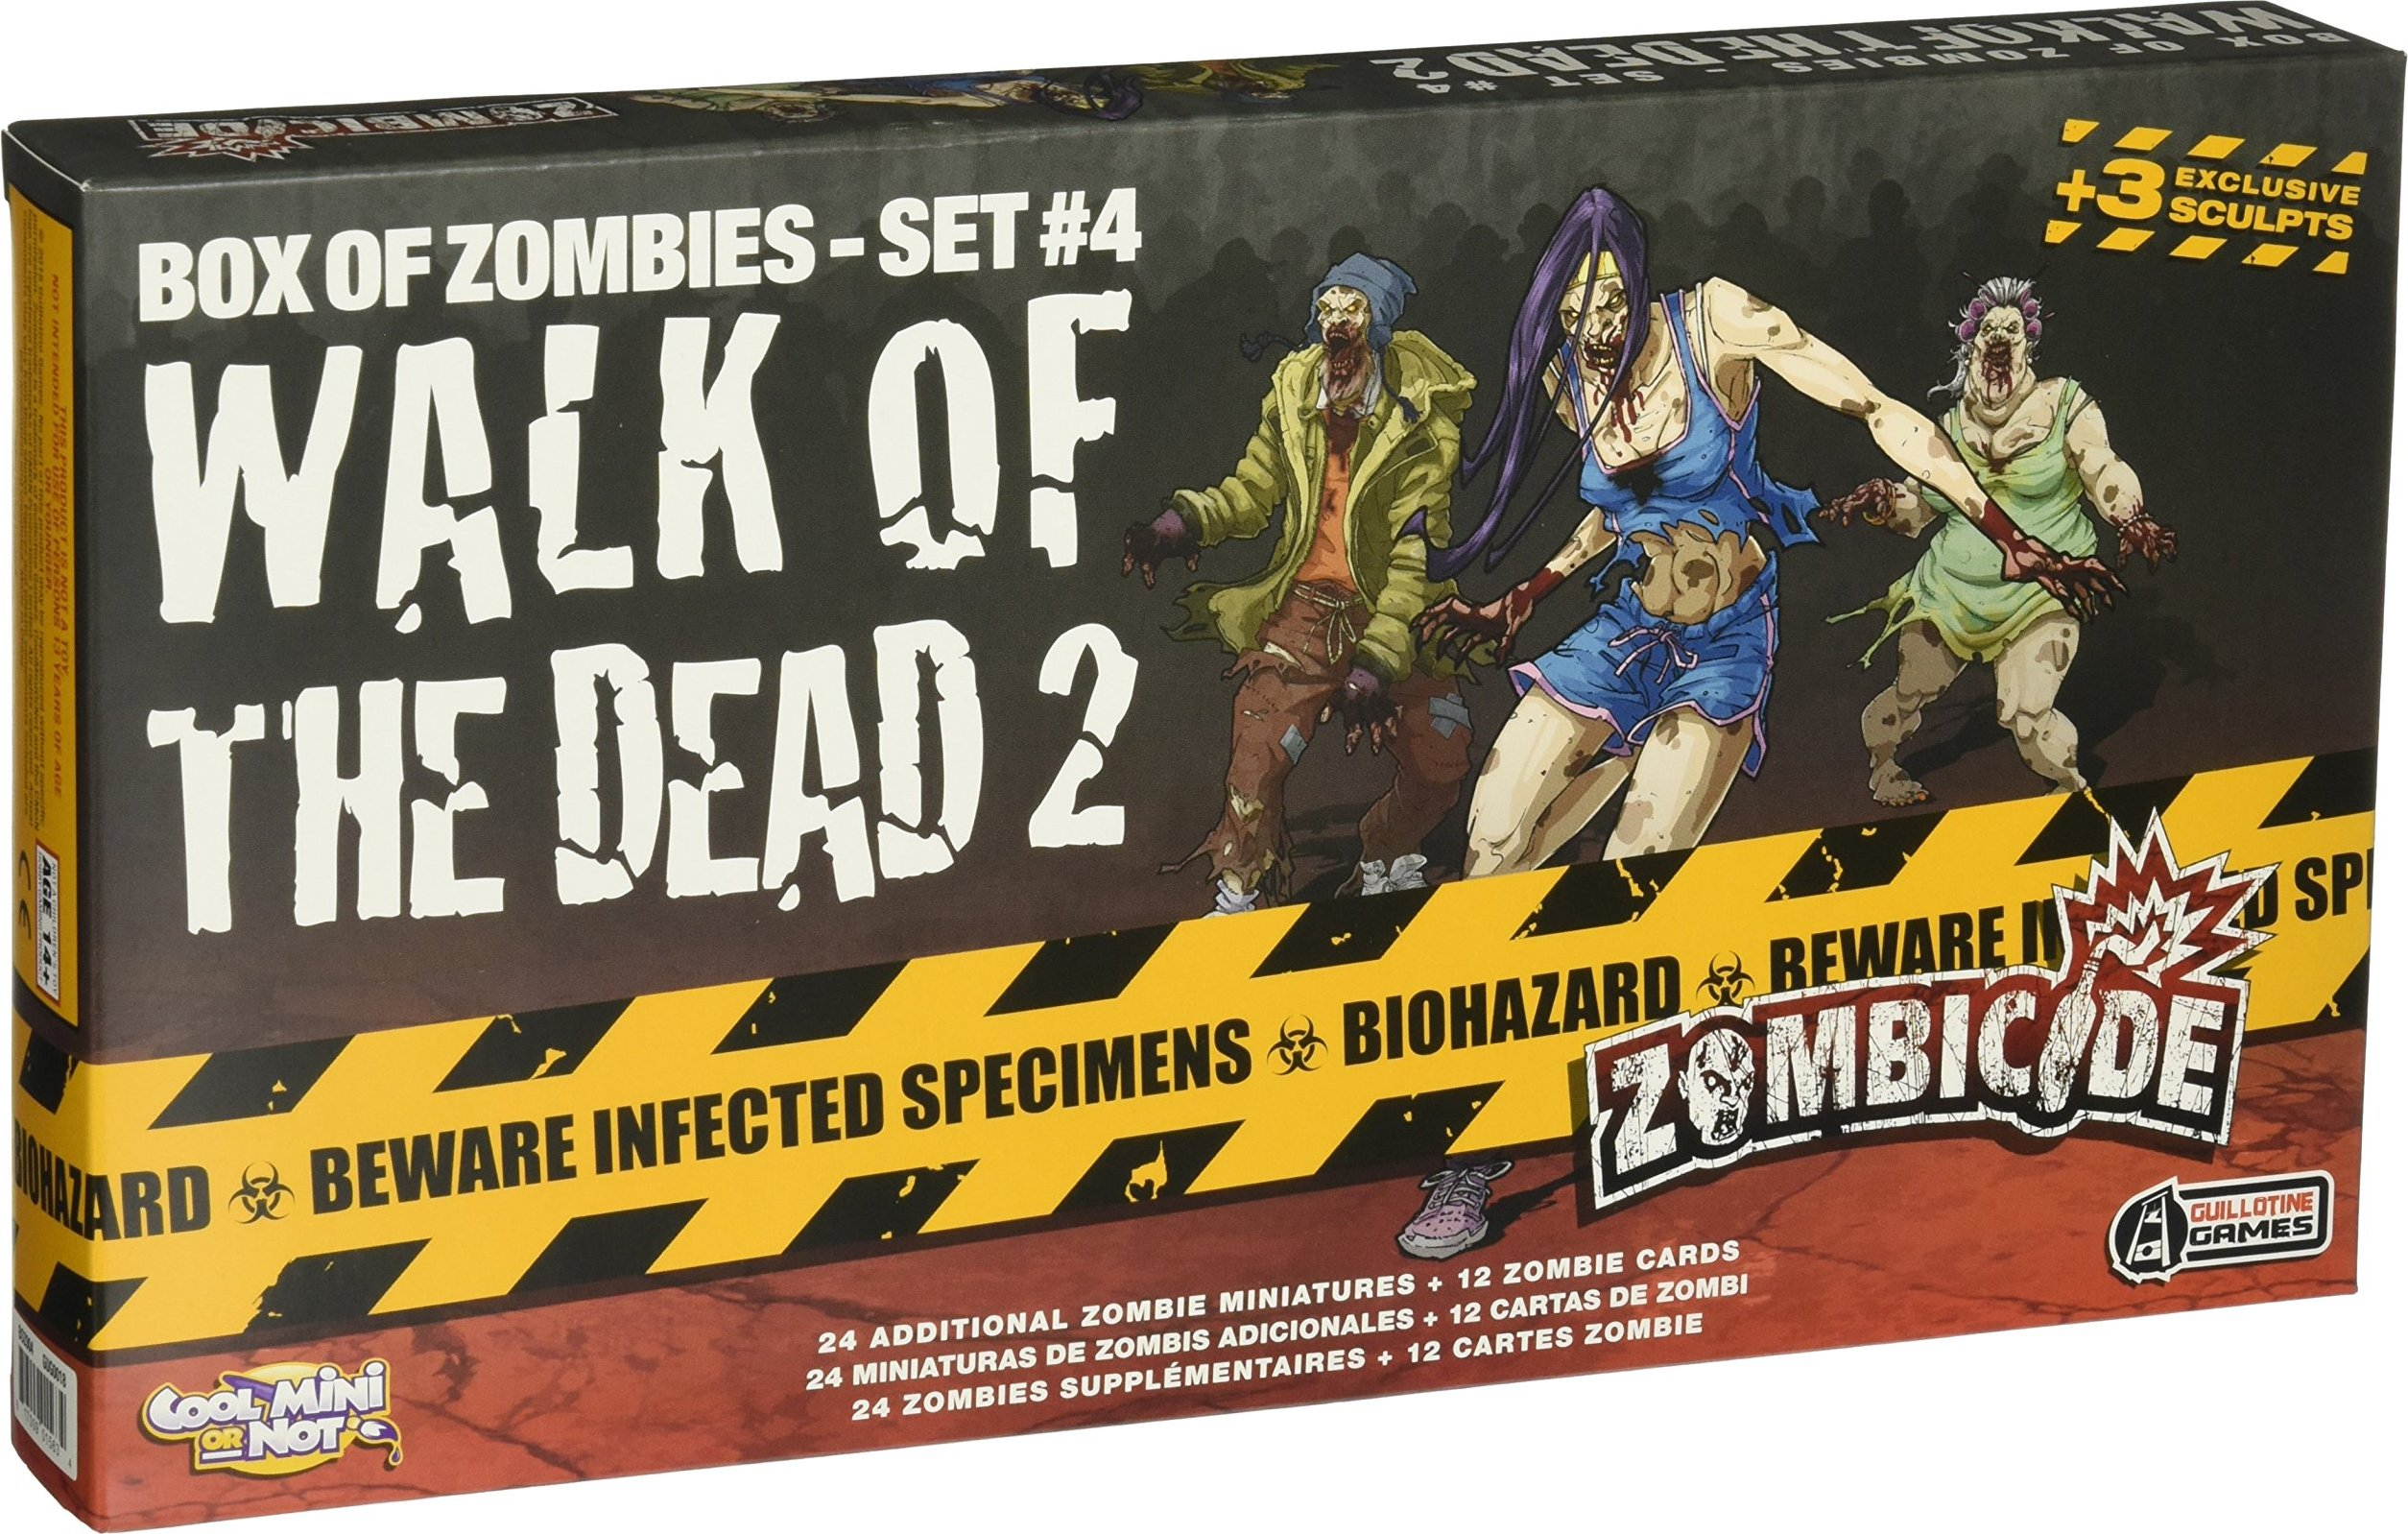 Zombicide+Box+of+Zombies+Set+%234%3A+Walk+of+the+Dead+2